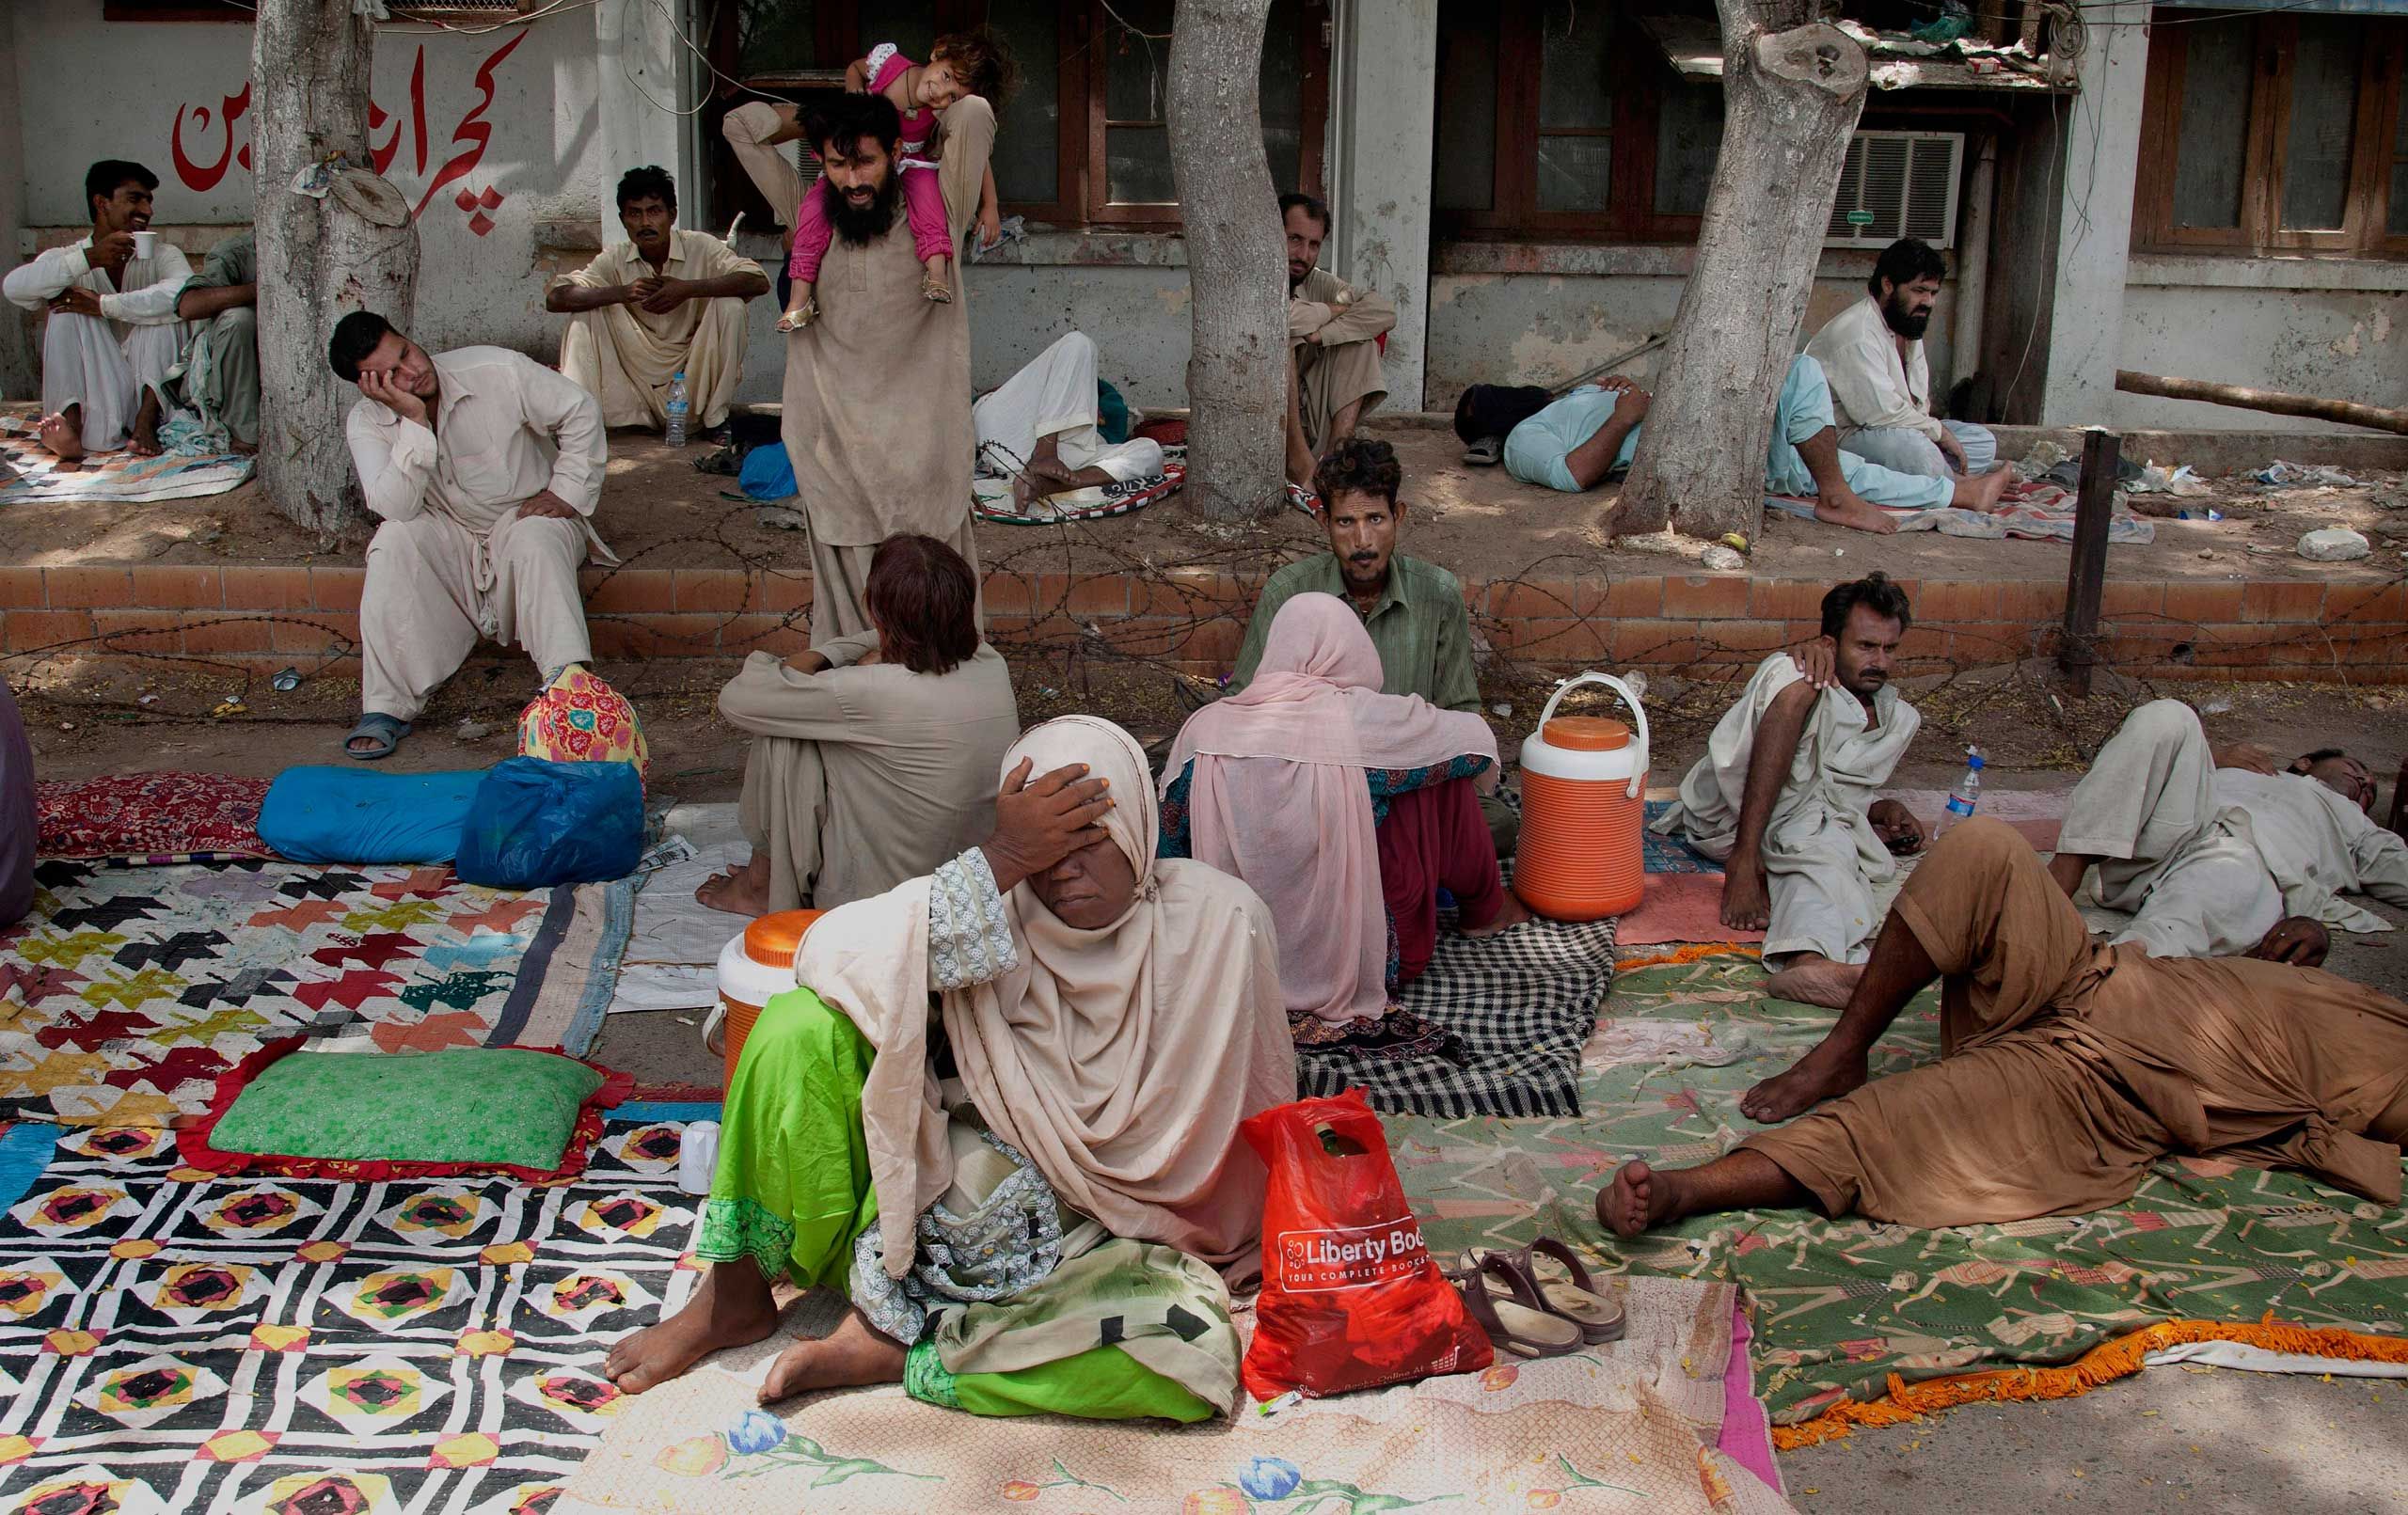 Relatives of patients suffering from heatstrokes take shelter under trees at a local hospital in Karachi, Pakistan, on June 24, 2015.